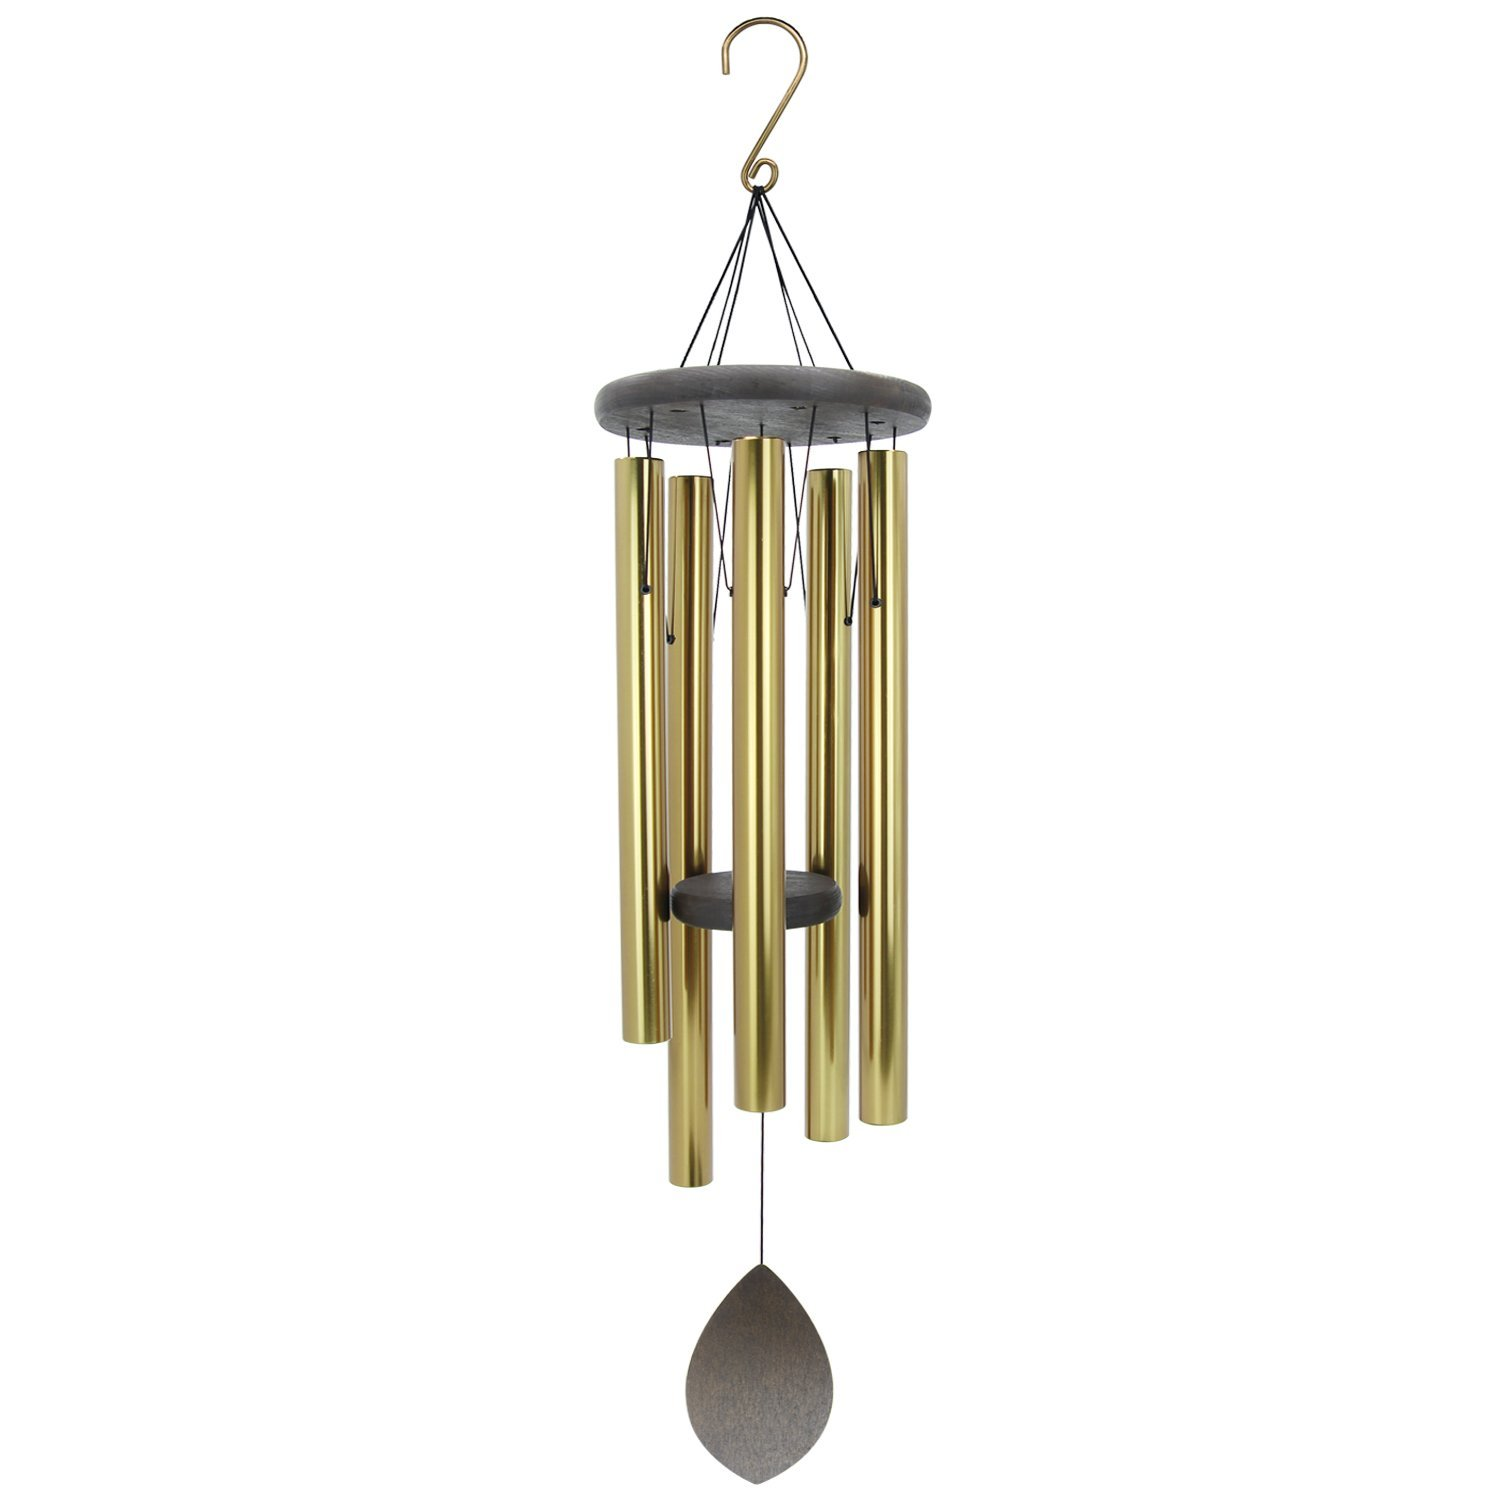 """Wind Chimes Amazing Grace Outdoor,36""""Large Wind Chimes Deep Tone with 5 Metal Tuned Tubes for Garden Yard Housewarming Hanging Decor,Memorial Wind Chimes for Sympathy Gift,Golden"""